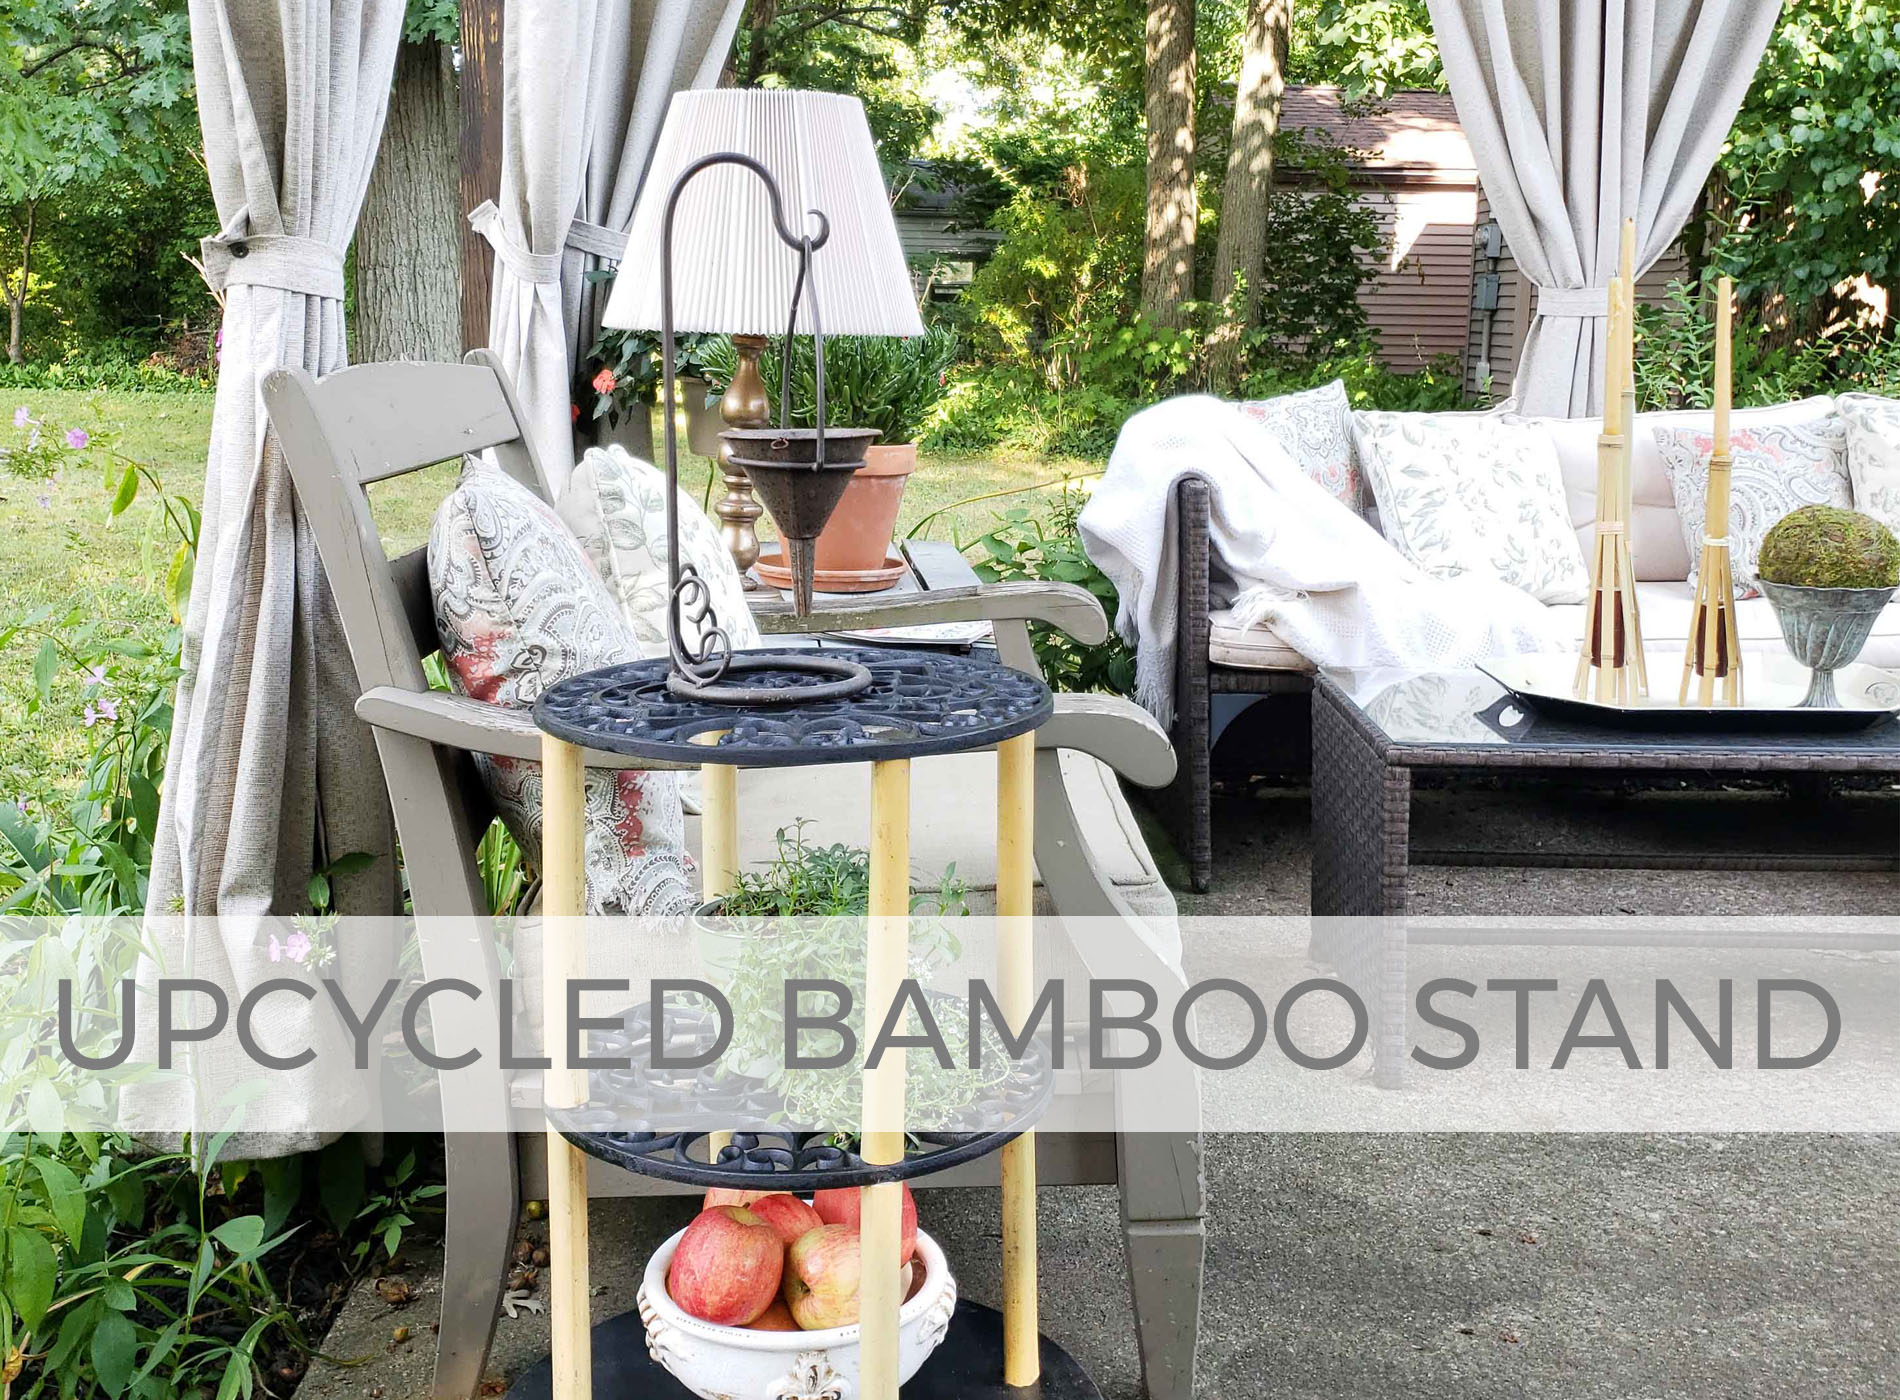 Upcycled Bamboo Stand by Larissa of Prodigal Pieces | prodigalpieces.com